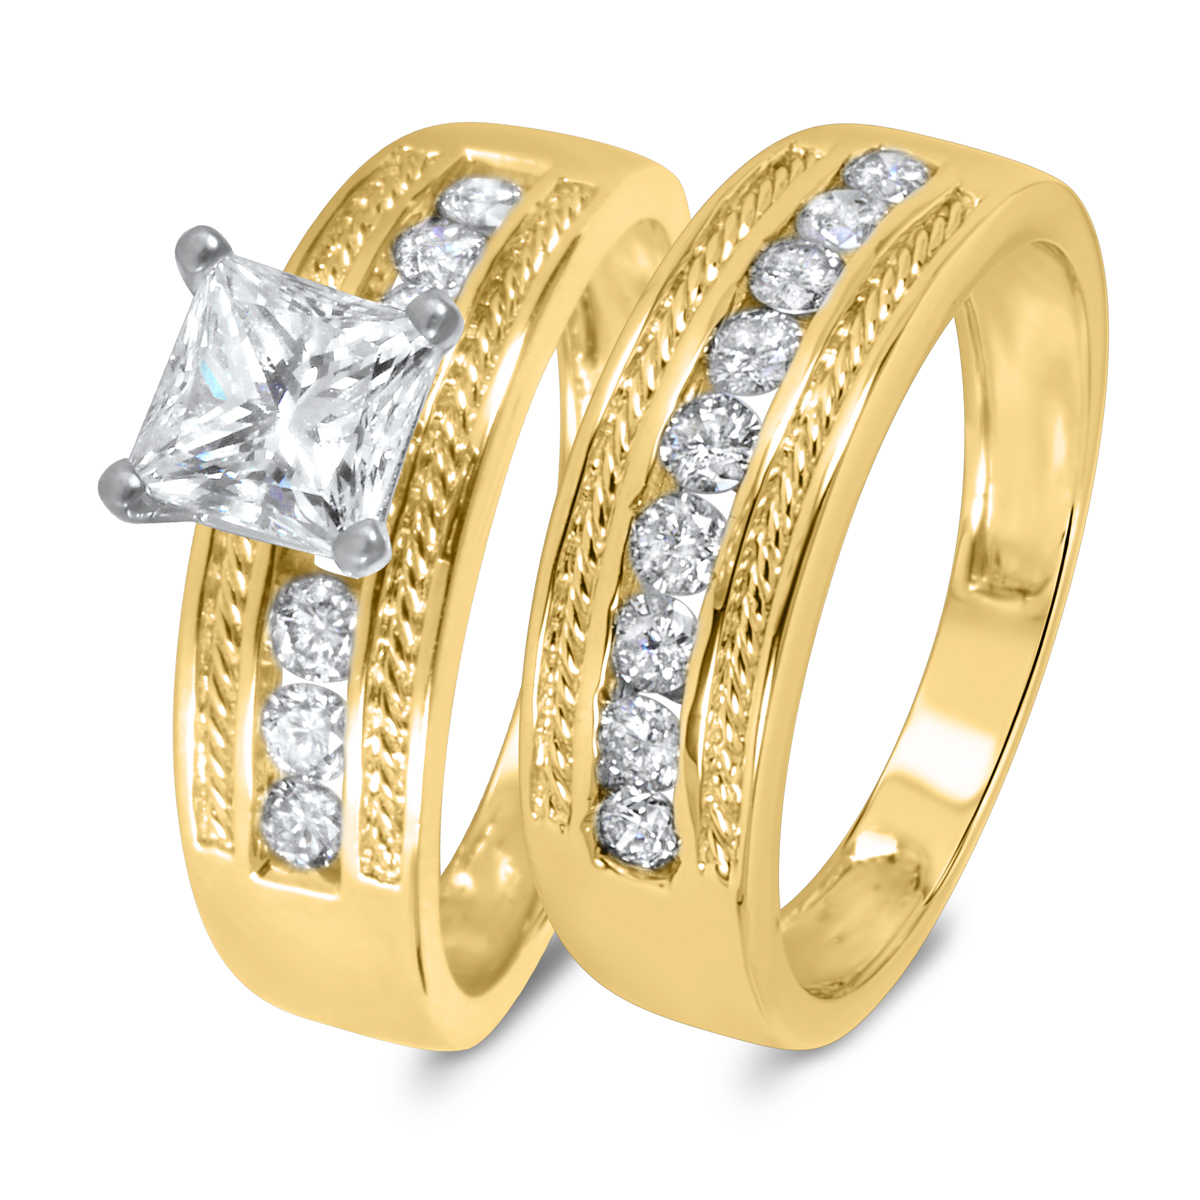 1 2/3 CT. T.W. Diamond Women's Bridal Wedding Ring Set 14K Yellow Gold